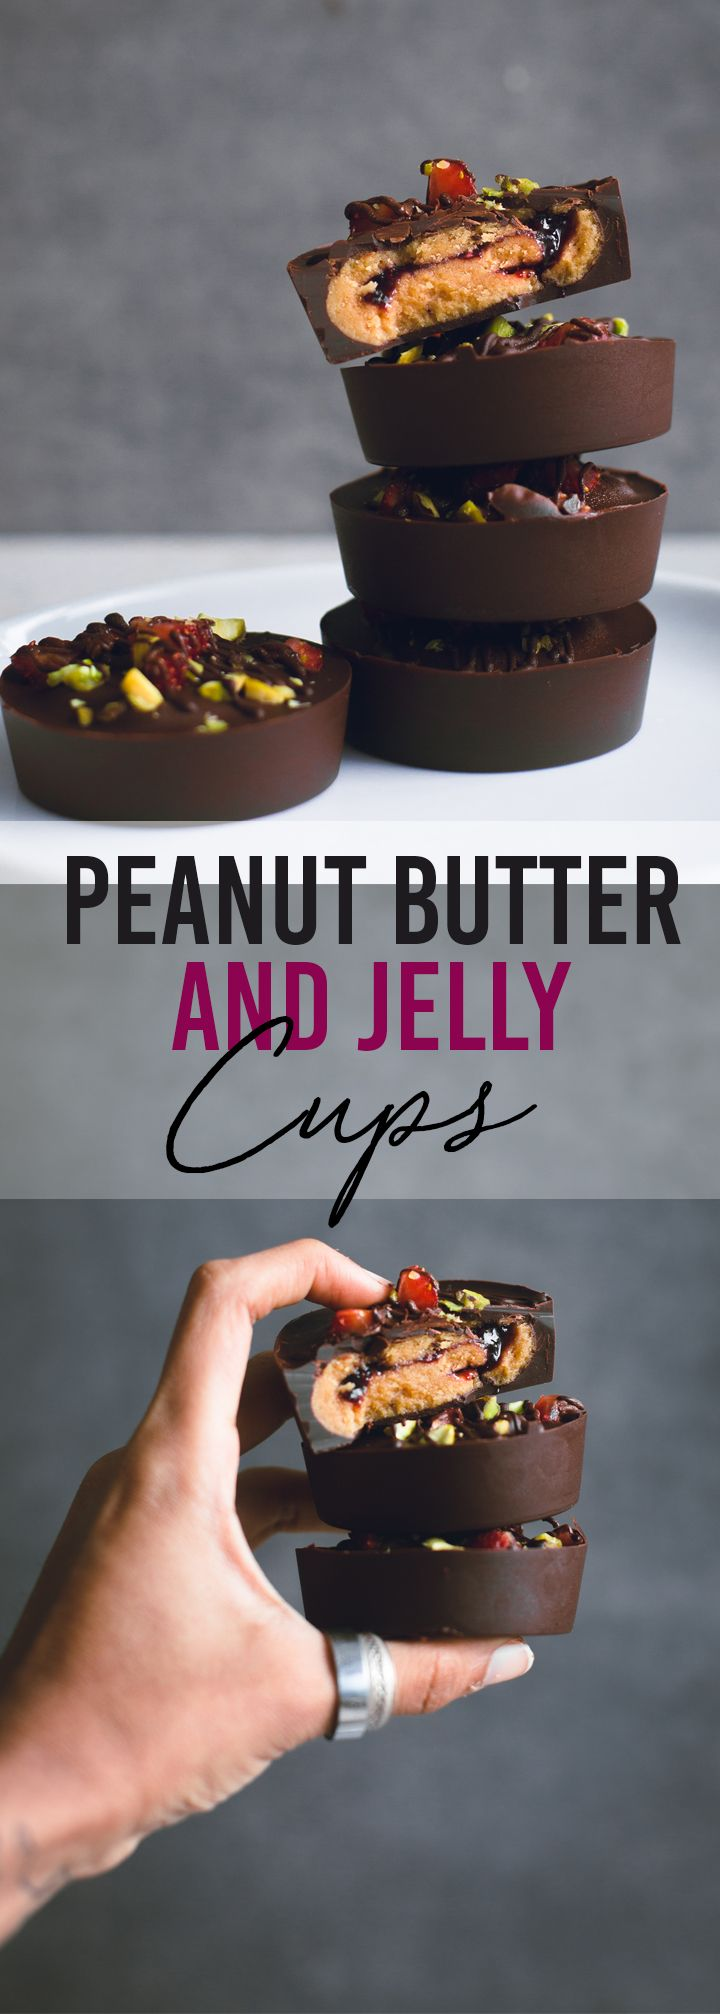 Vegan Peanut Butter and Jelly Cups. A fun variation to the traditional Peanut Butter Cup. 6 Ingredients, 15 minutes to make and all too easy to eat! #vegan #peanutbutter #jelly #chocolate #simple #healthy #dairyfree